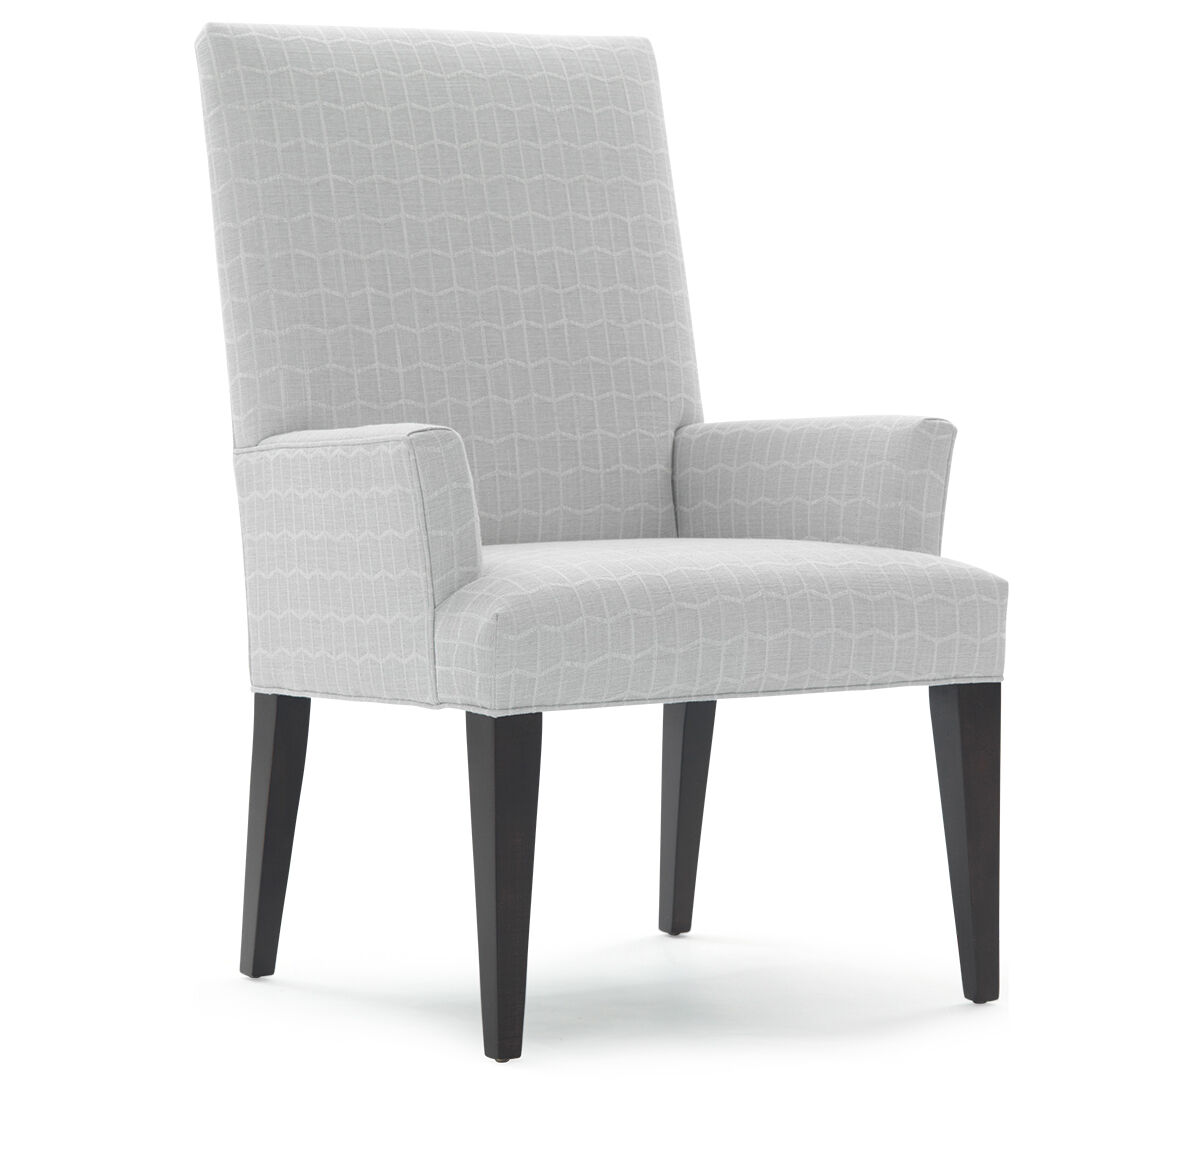 ANTHONY TALL ARM DINING CHAIR HADLEY - SILVER hi-res  sc 1 st  Mitchell Gold + Bob Williams & Dining Chairs